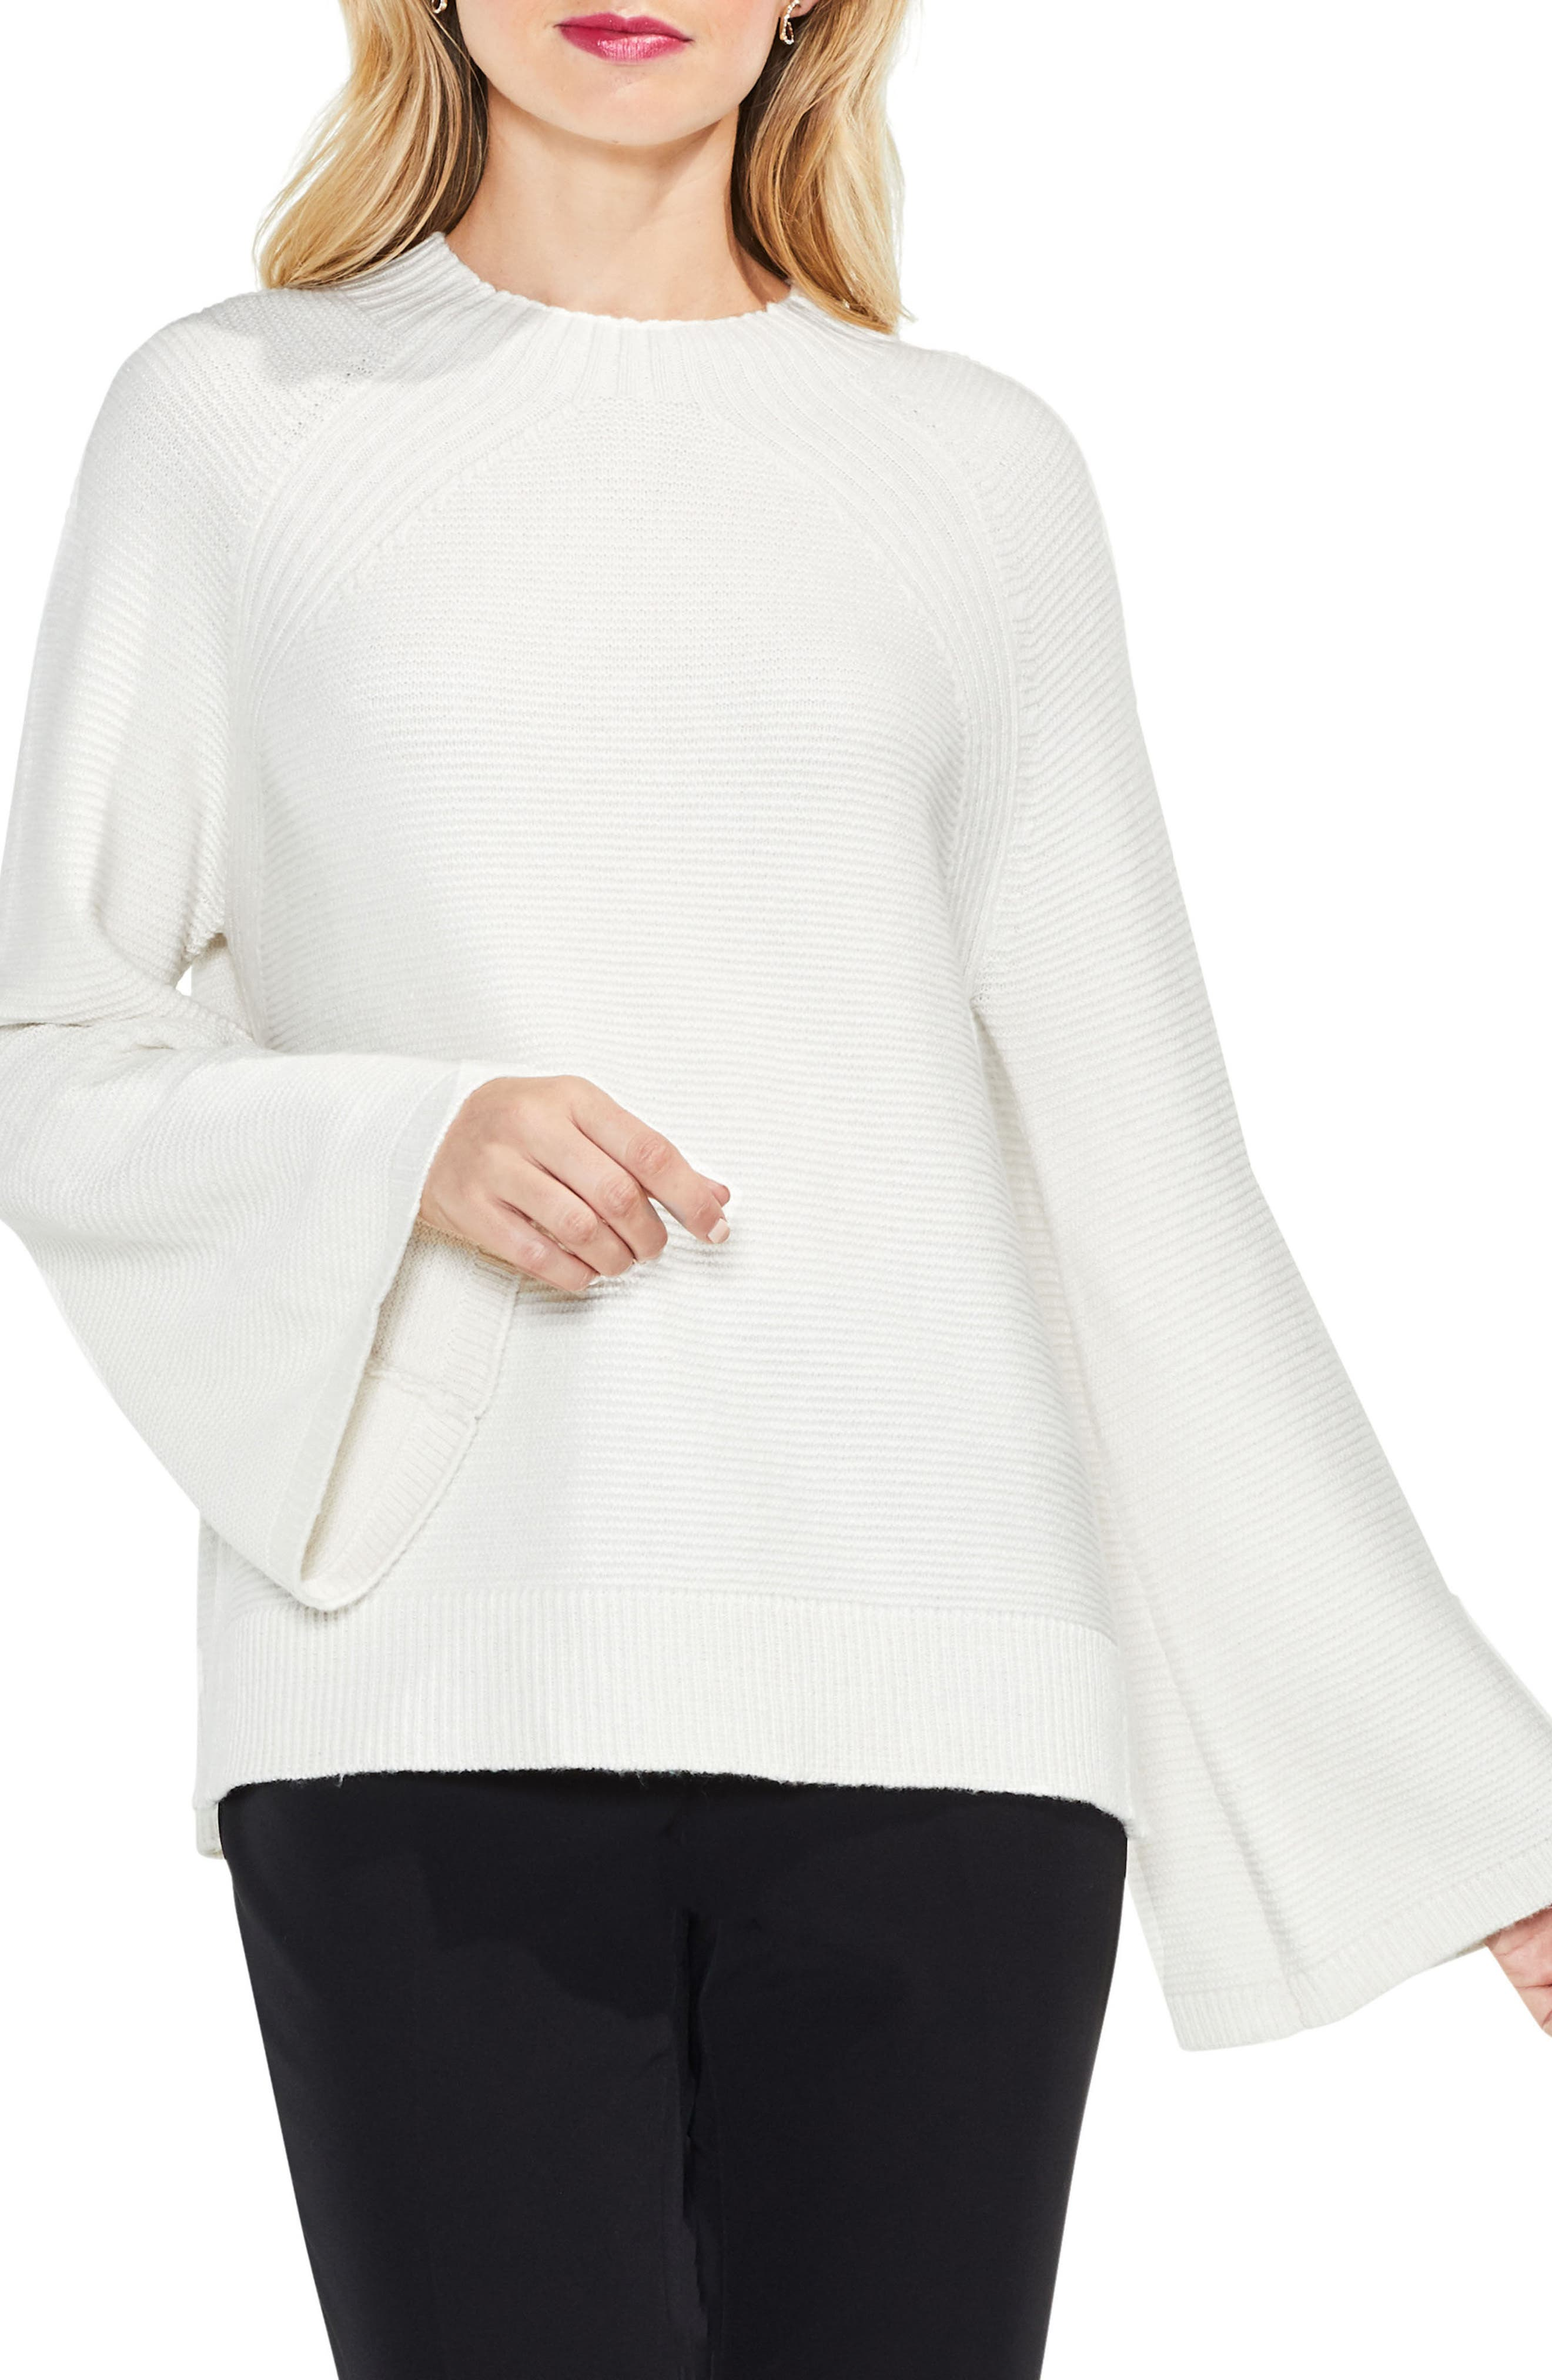 Vince Camuto Bell Sleeve Sweater (Regular & Petite)